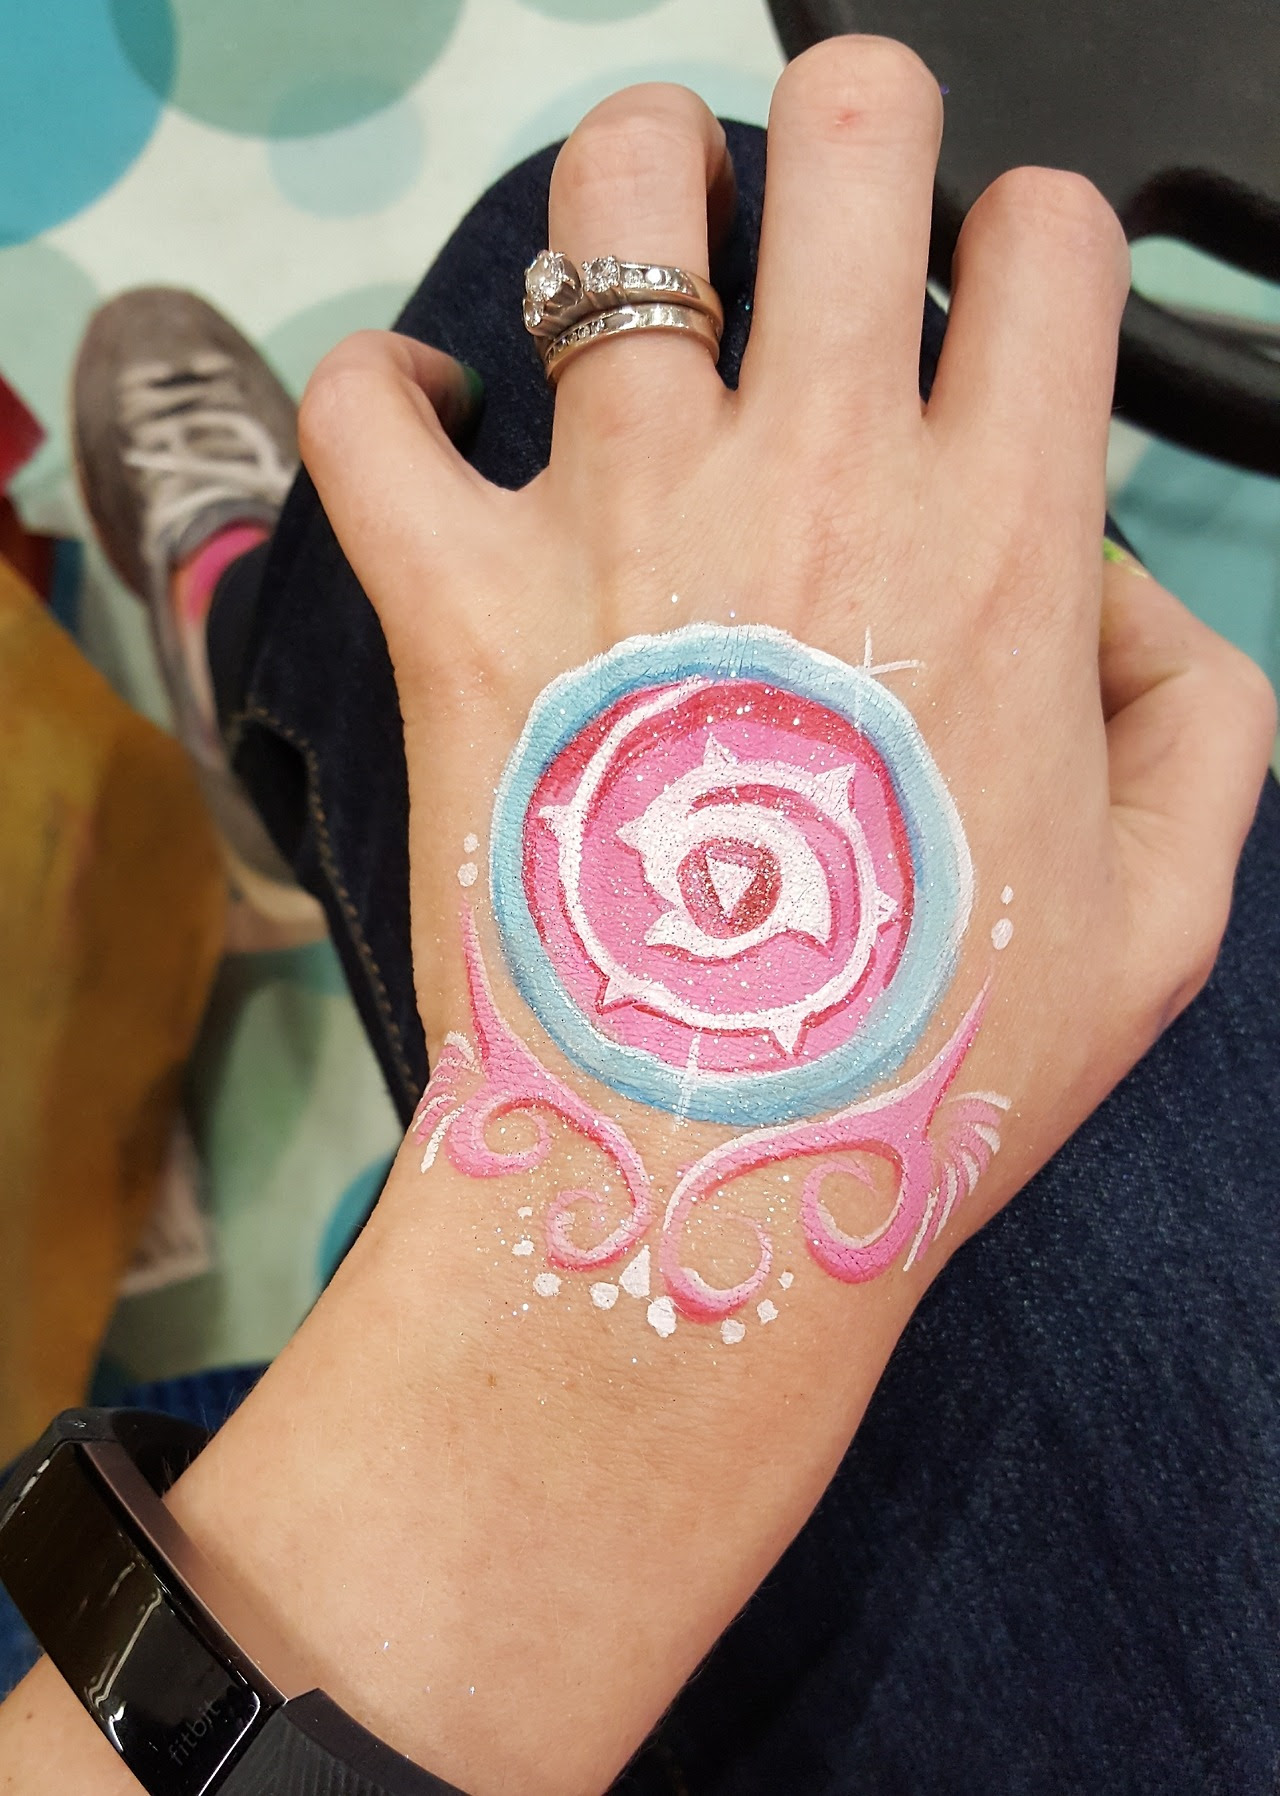 downtime at the face painting booth~